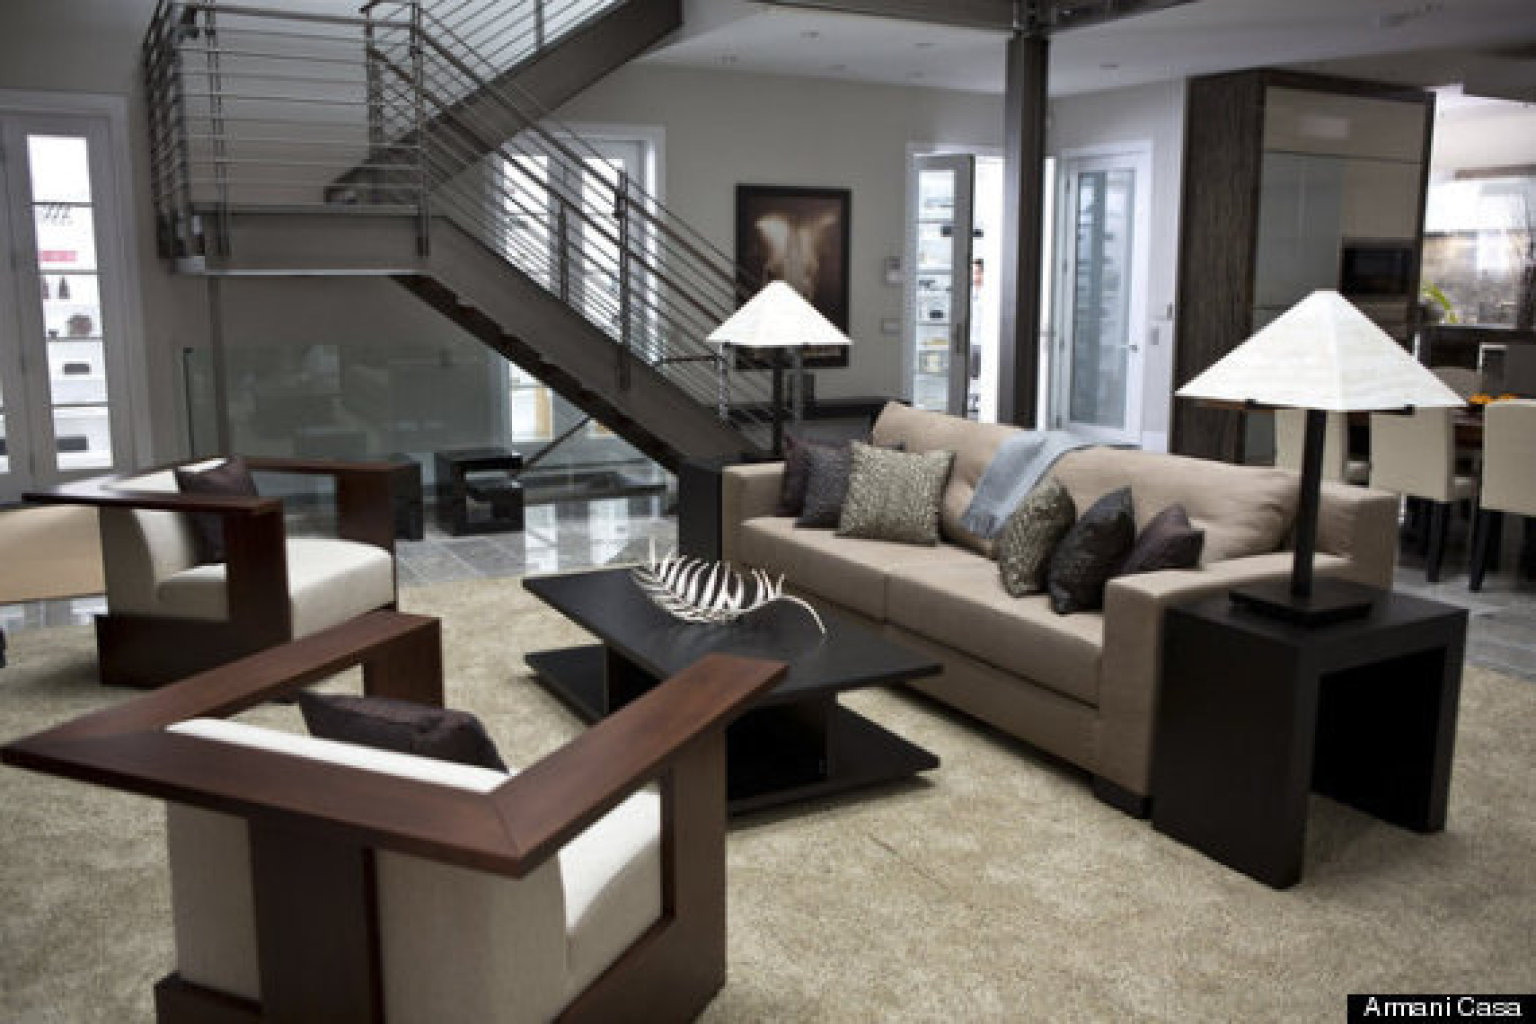 Armani casa giorgio armani 39 s decor line to be featured for Designer casa